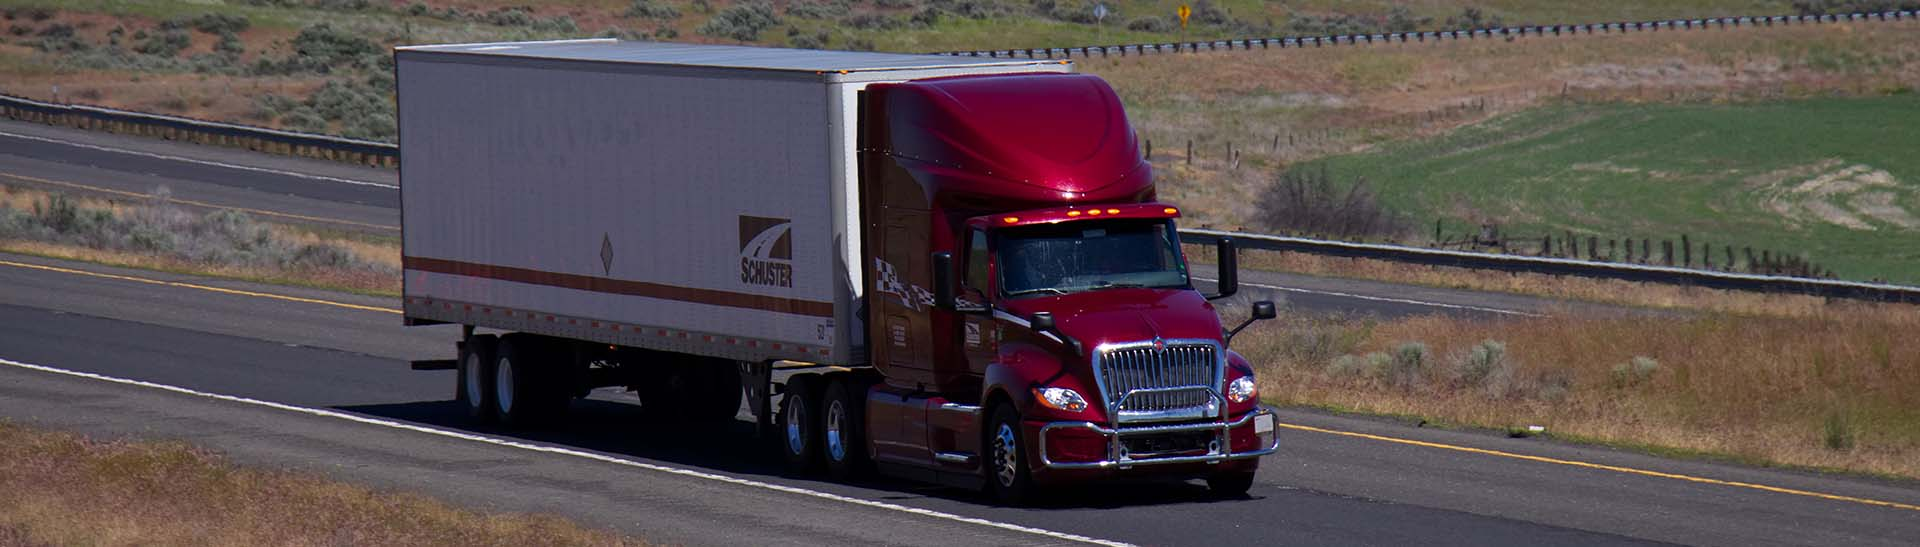 Orland Park Trucking Services, Logistics Services and Intermodal Trucking